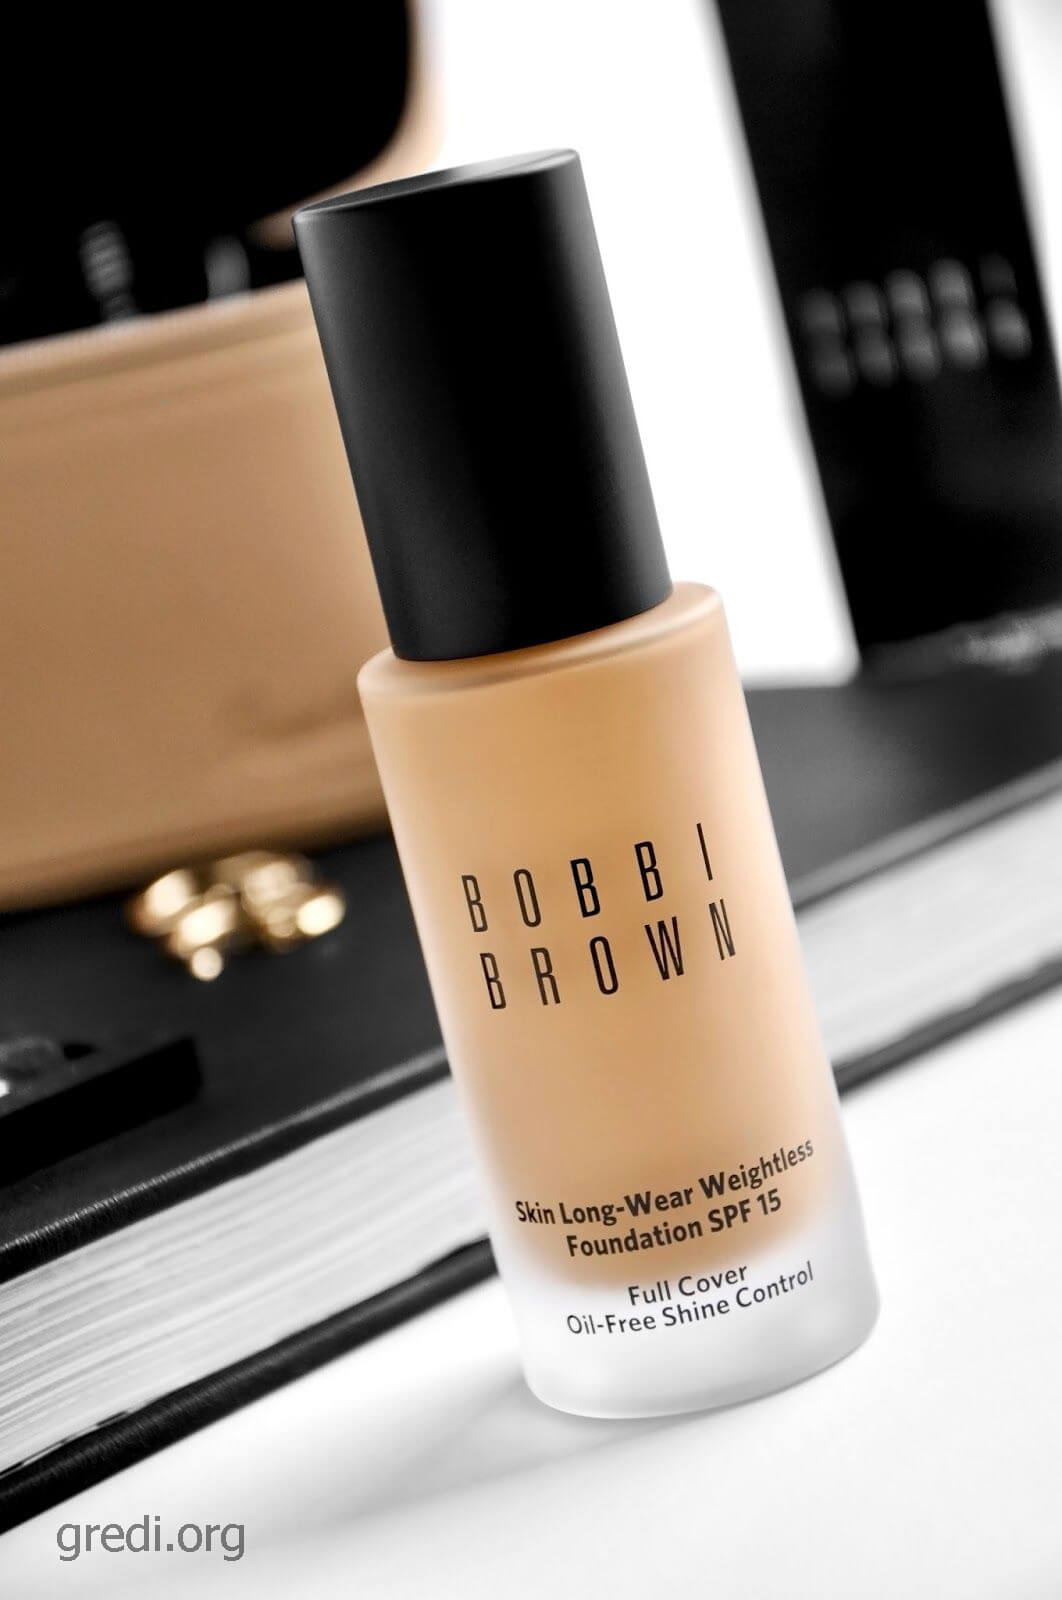 BOBBI BROWN SKIN LONG-WEAR